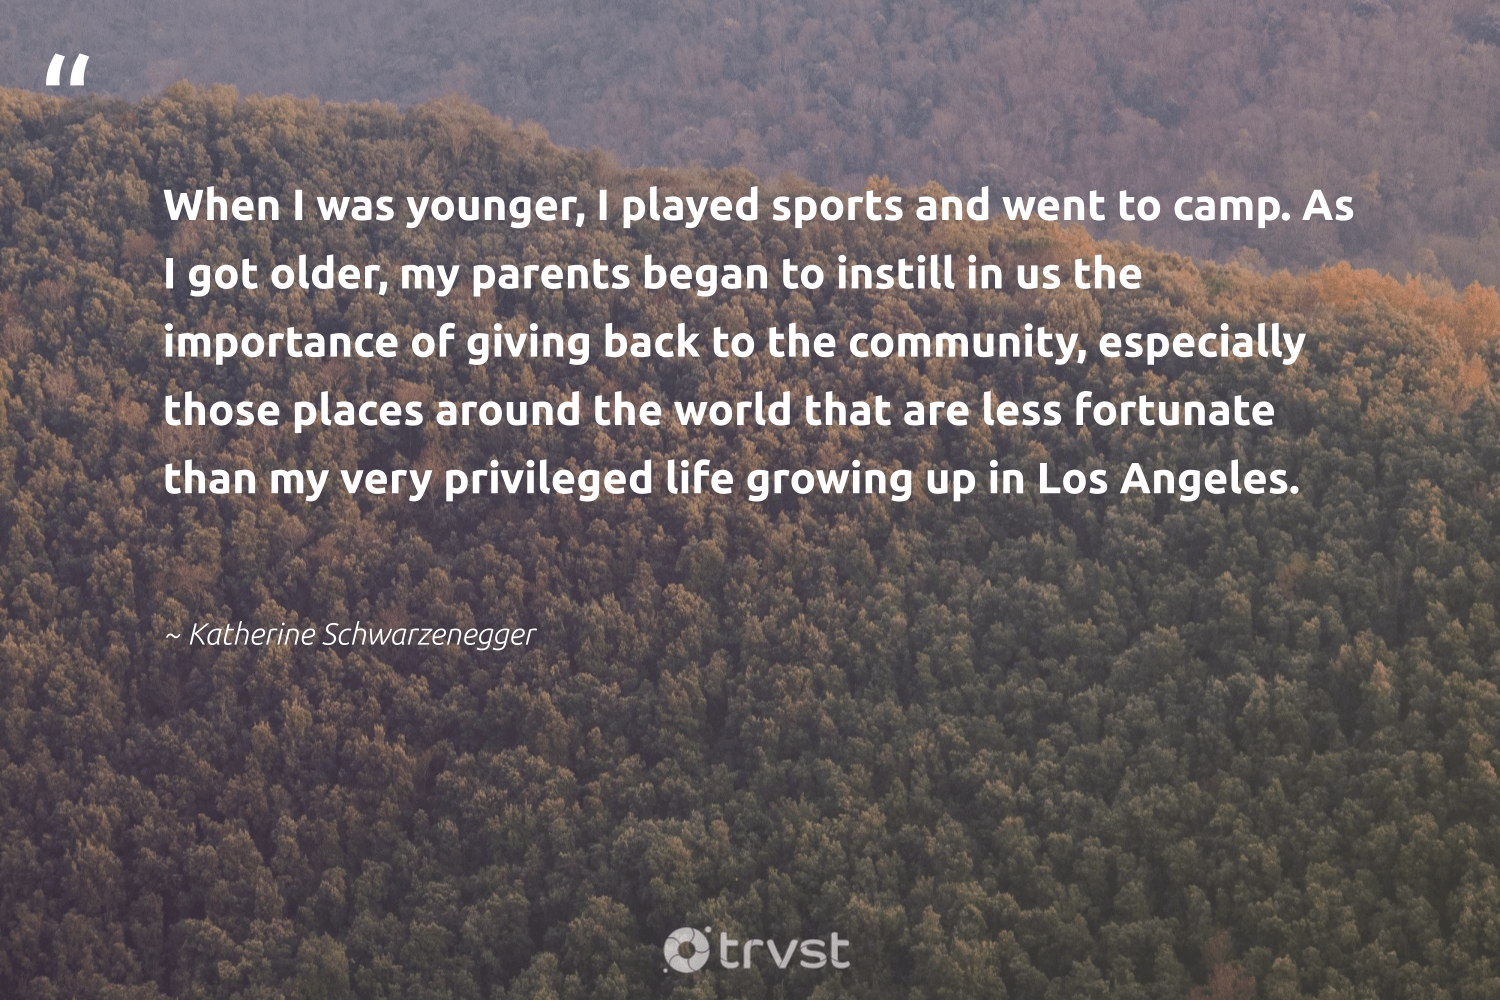 """""""When I was younger, I played sports and went to camp. As I got older, my parents began to instill in us the importance of giving back to the community, especially those places around the world that are less fortunate than my very privileged life growing up in Los Angeles.""""  - Katherine Schwarzenegger #trvst #quotes #givingback #dogood #giveback #giveforthefuture #changemakers #ecoconscious #socialgood #itscooltobekind #togetherwecan #changetheworld"""